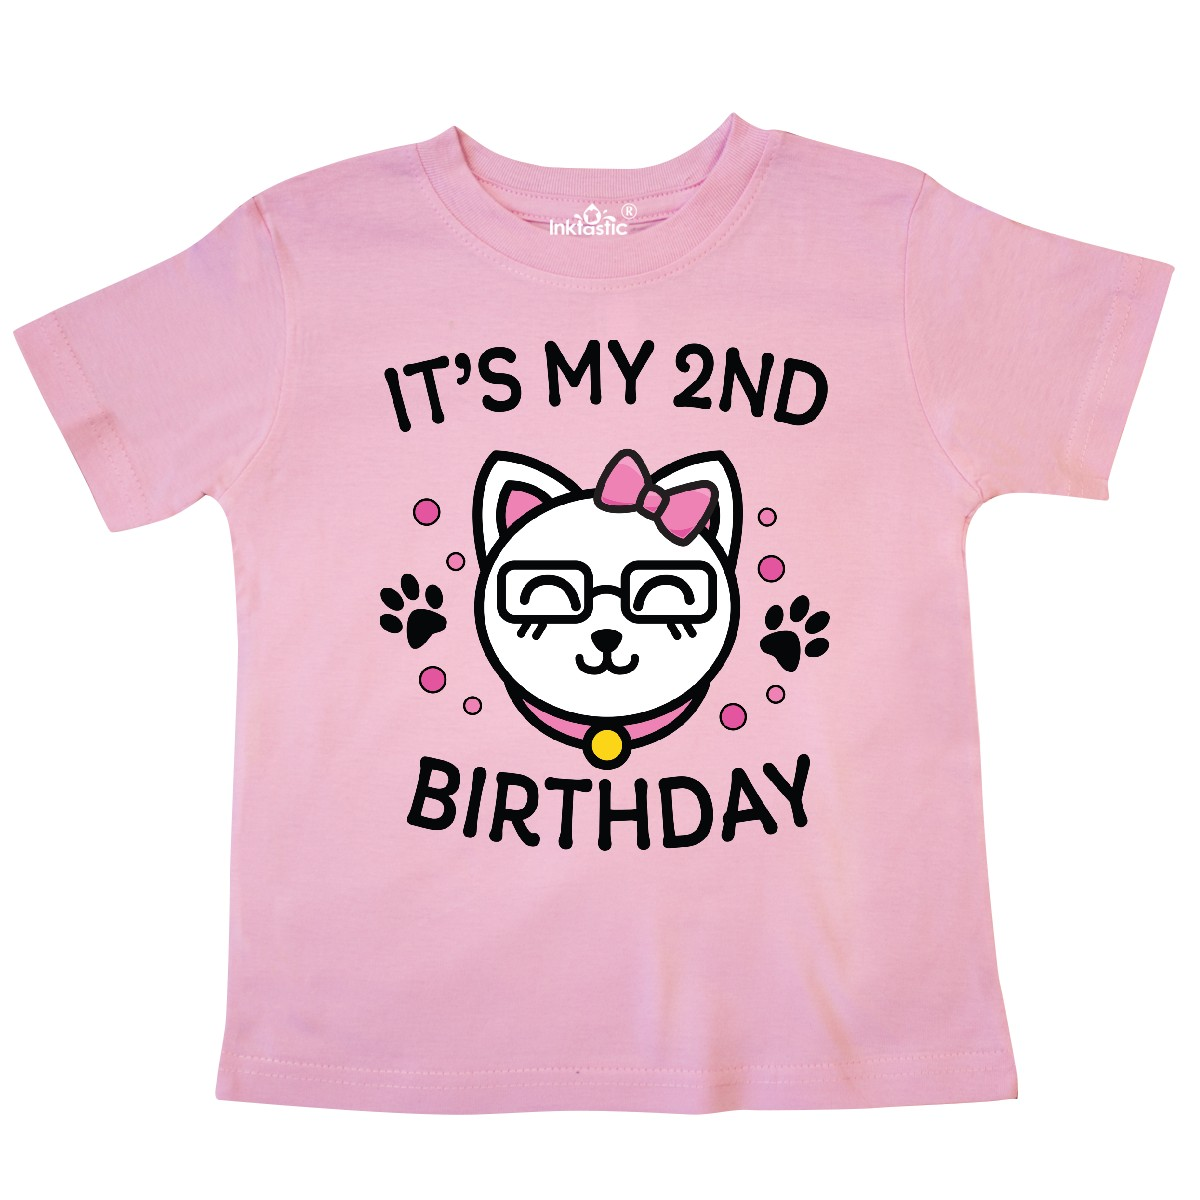 inktastic Its My 2nd Birthday with Cat in Glasses Toddler Long Sleeve T-Shirt